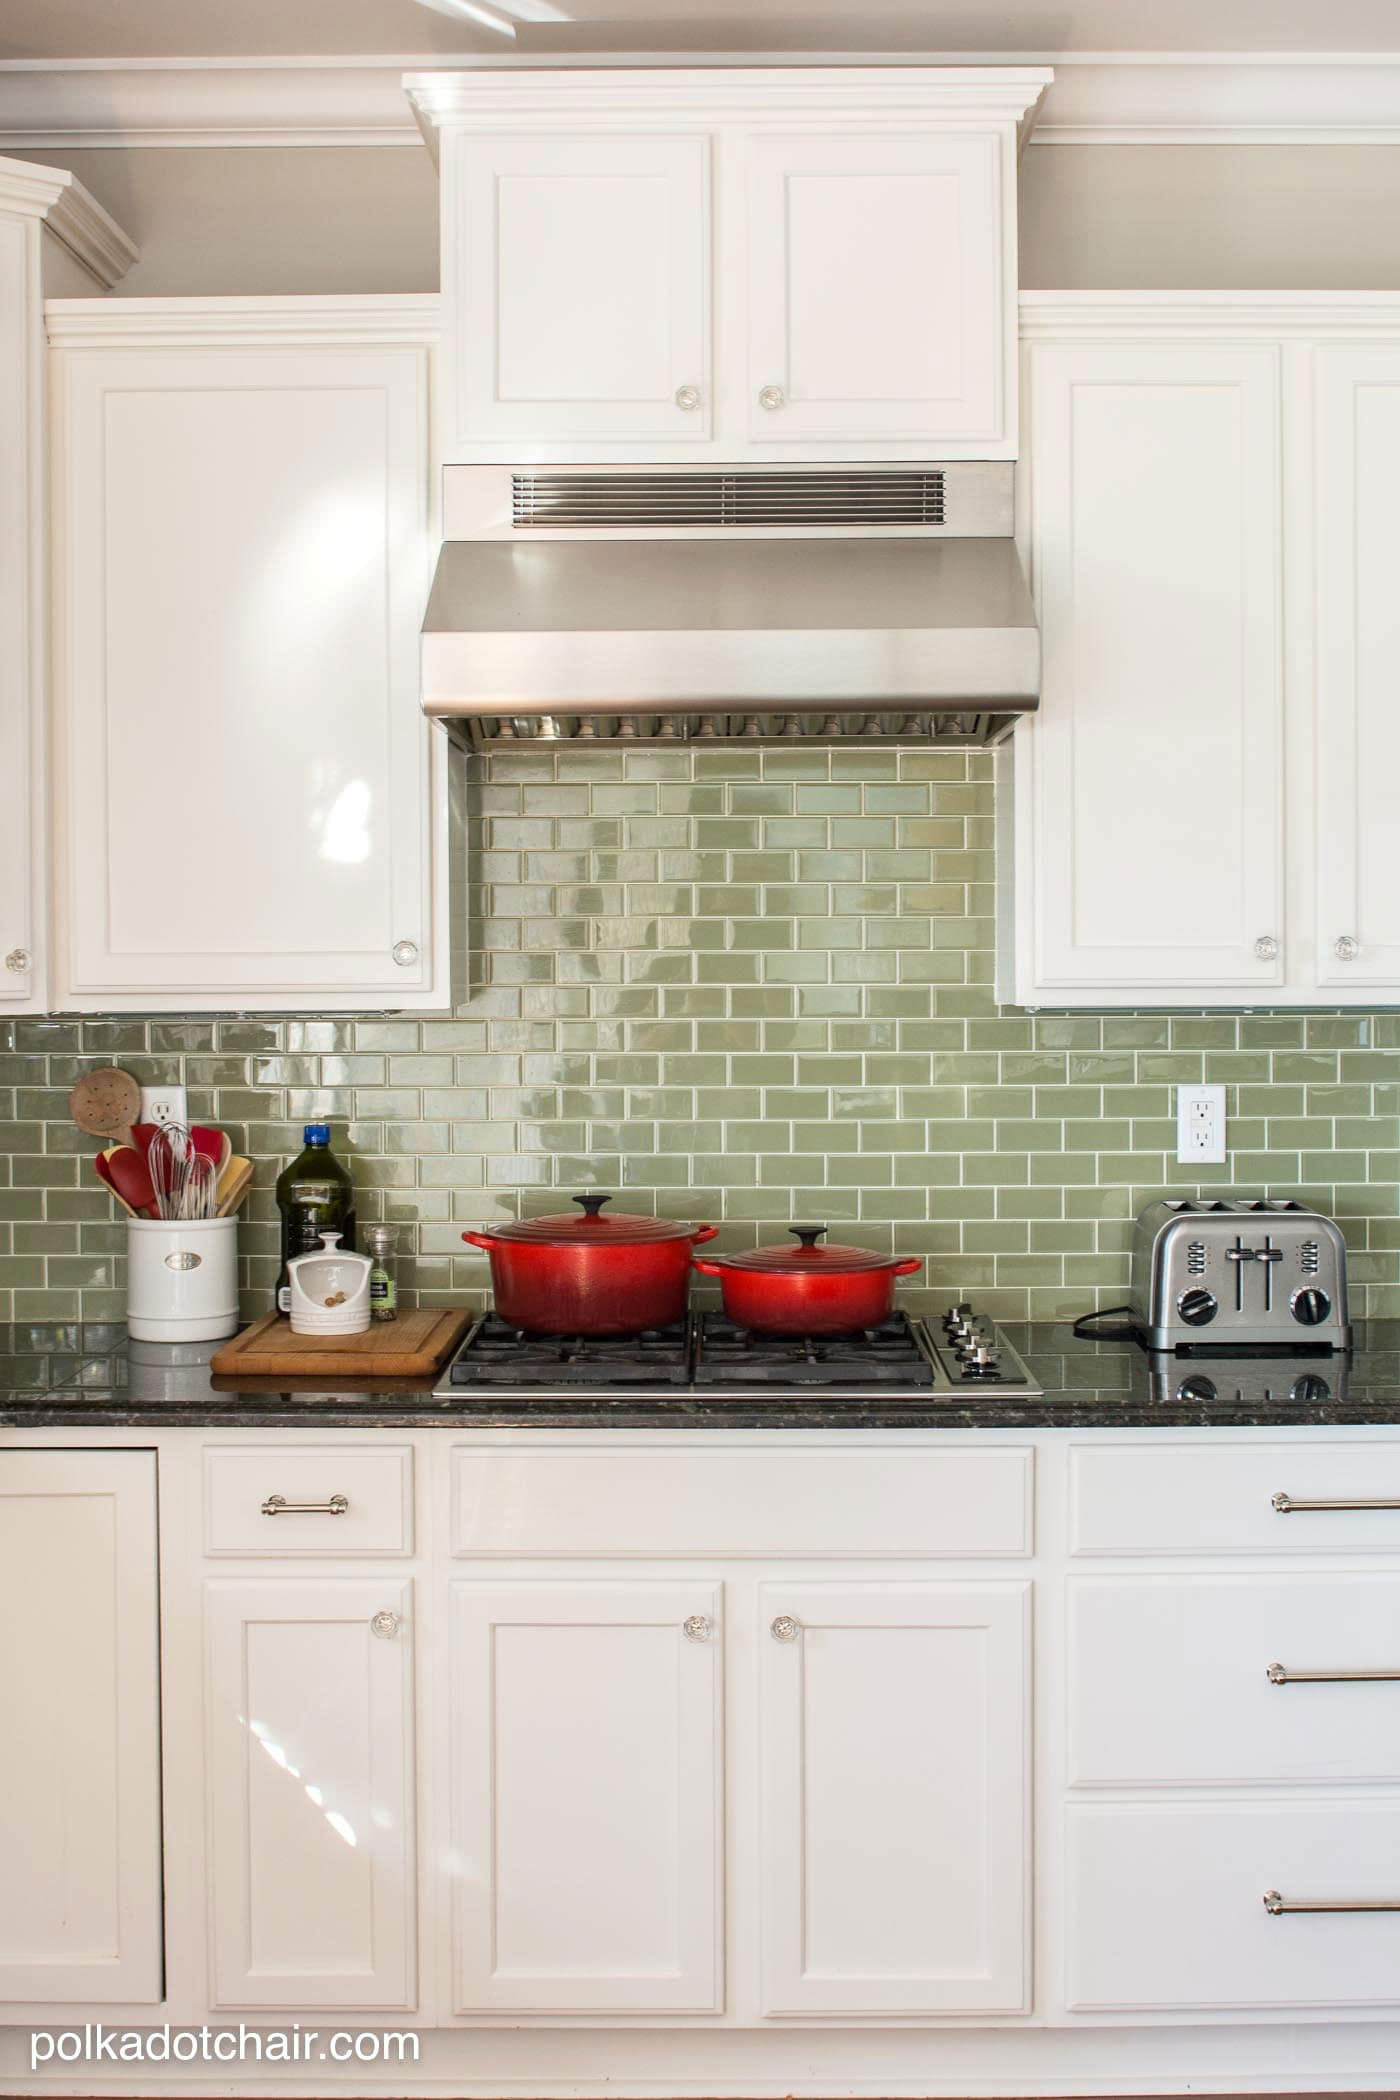 Permalink to Kitchen Cabinet Makeover